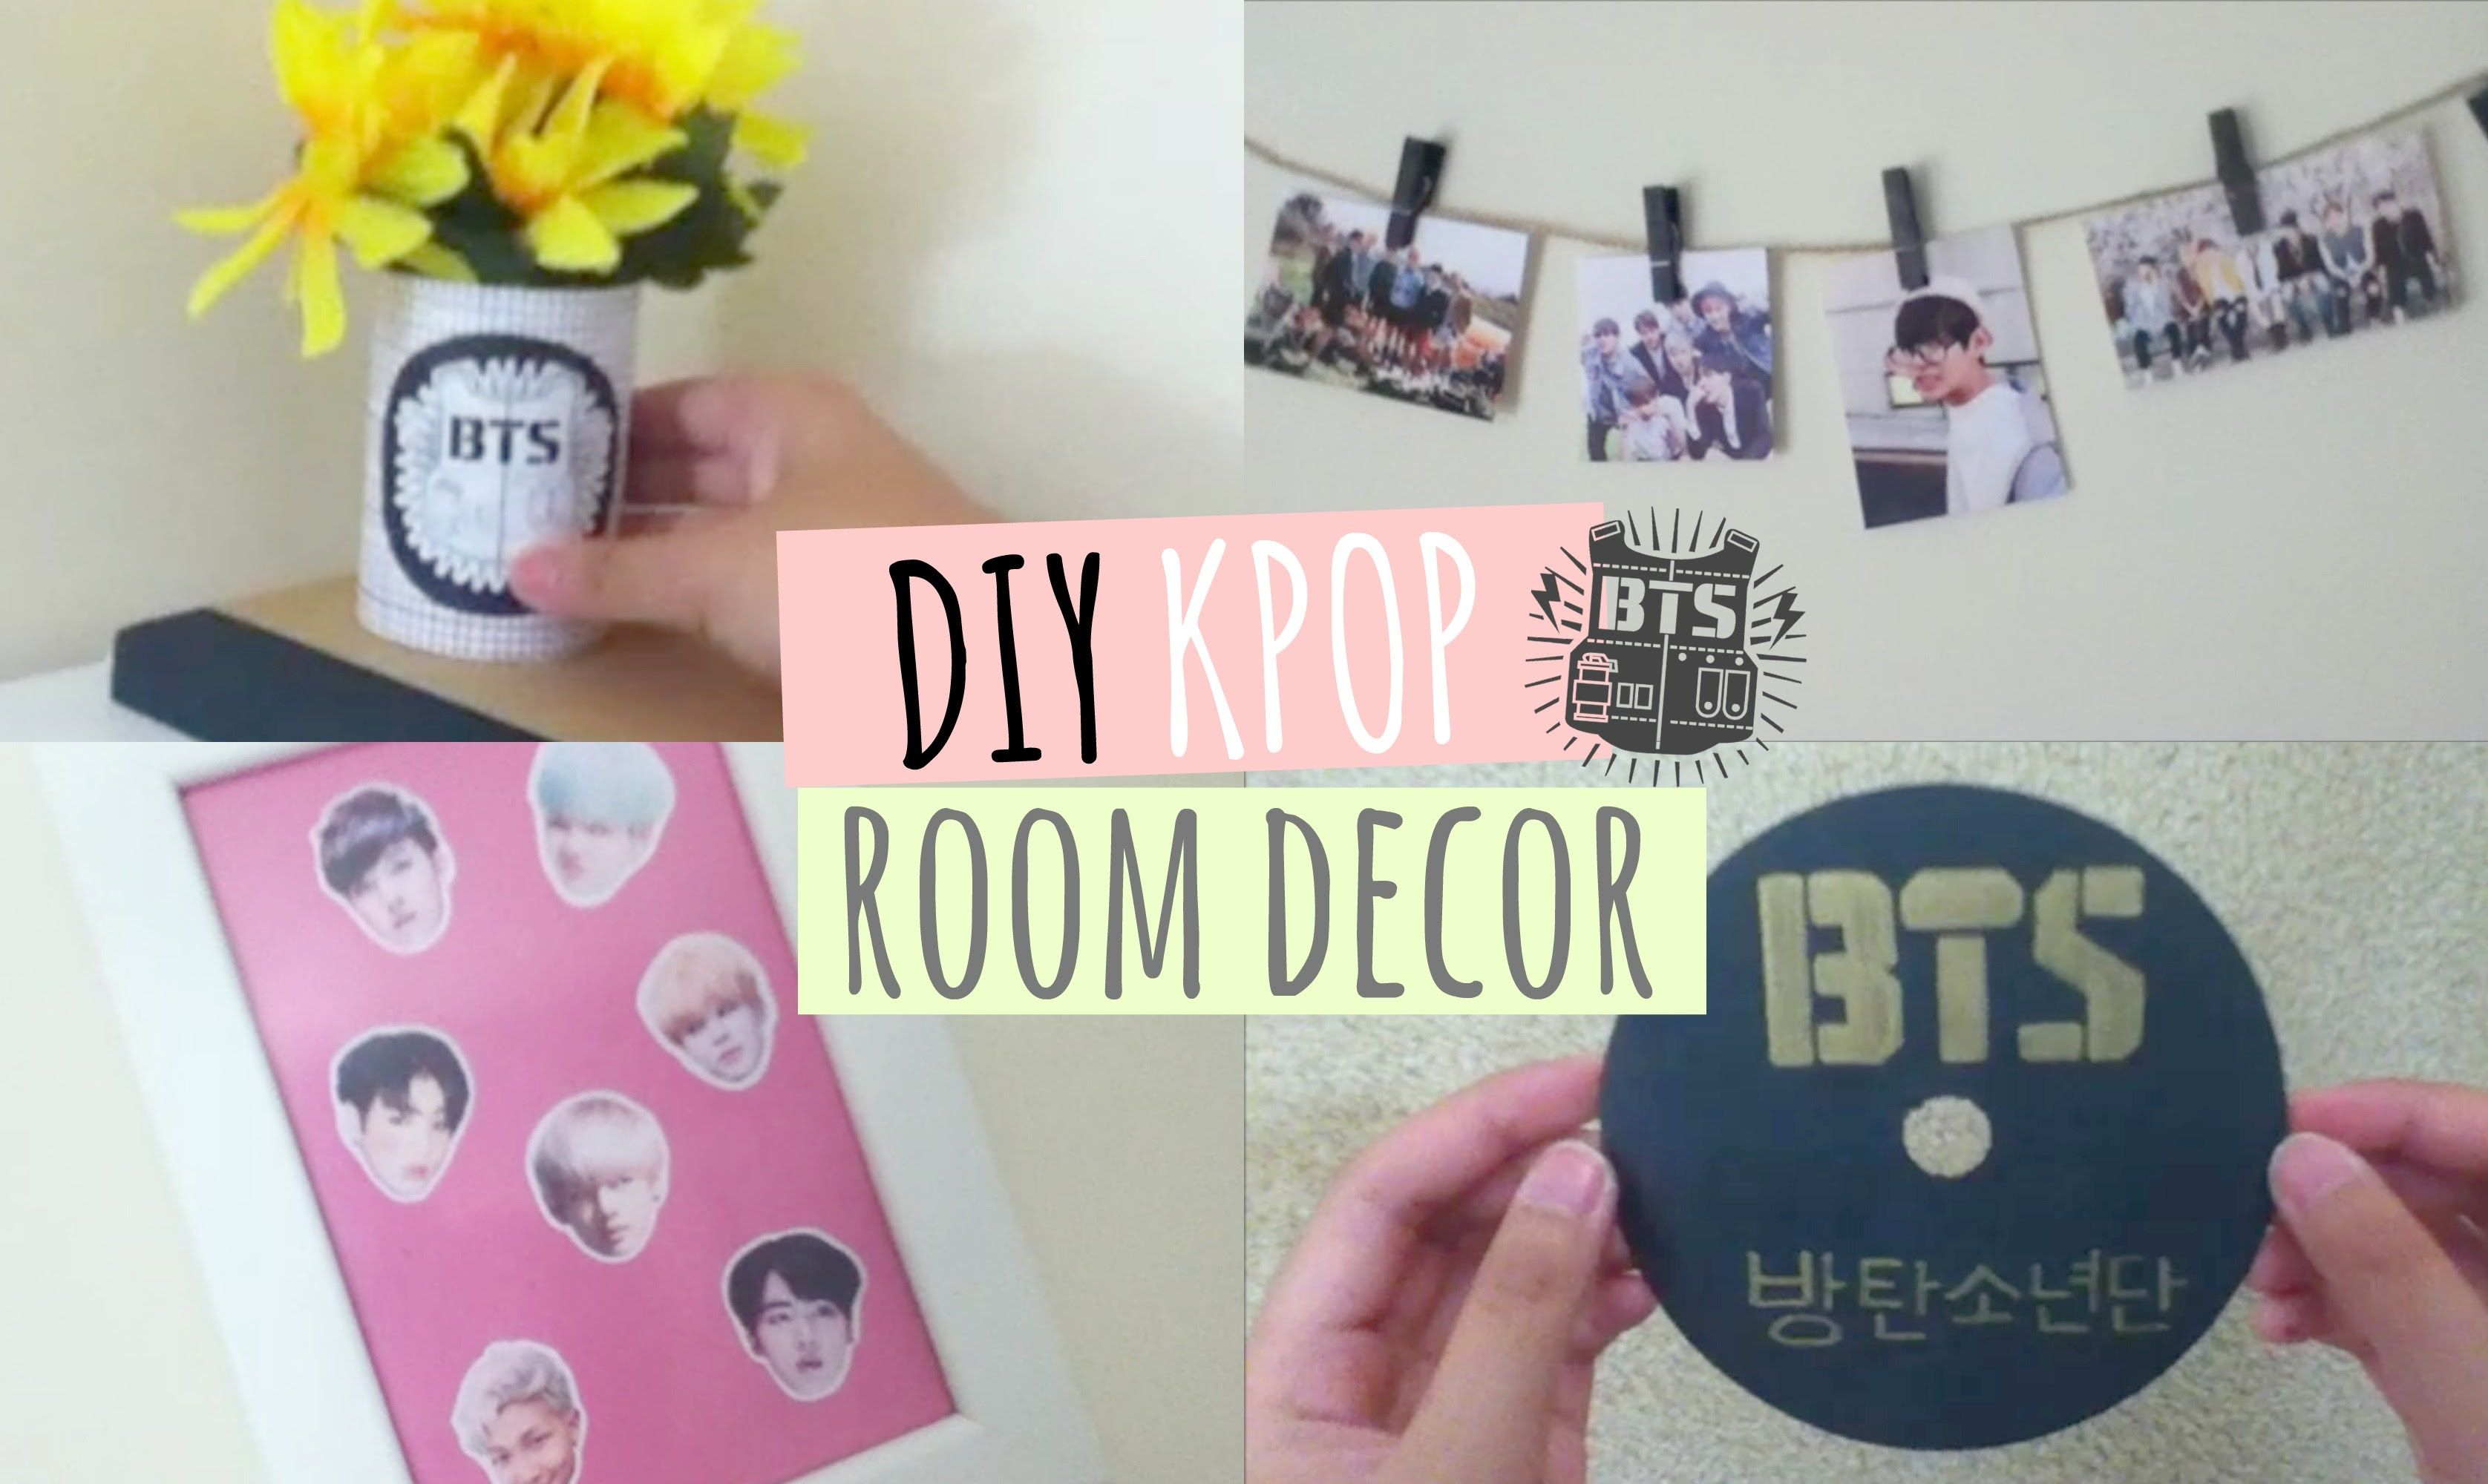 Stuff For Room Decor Diy Kpop Room Decor Room Ideas Pinterest Room